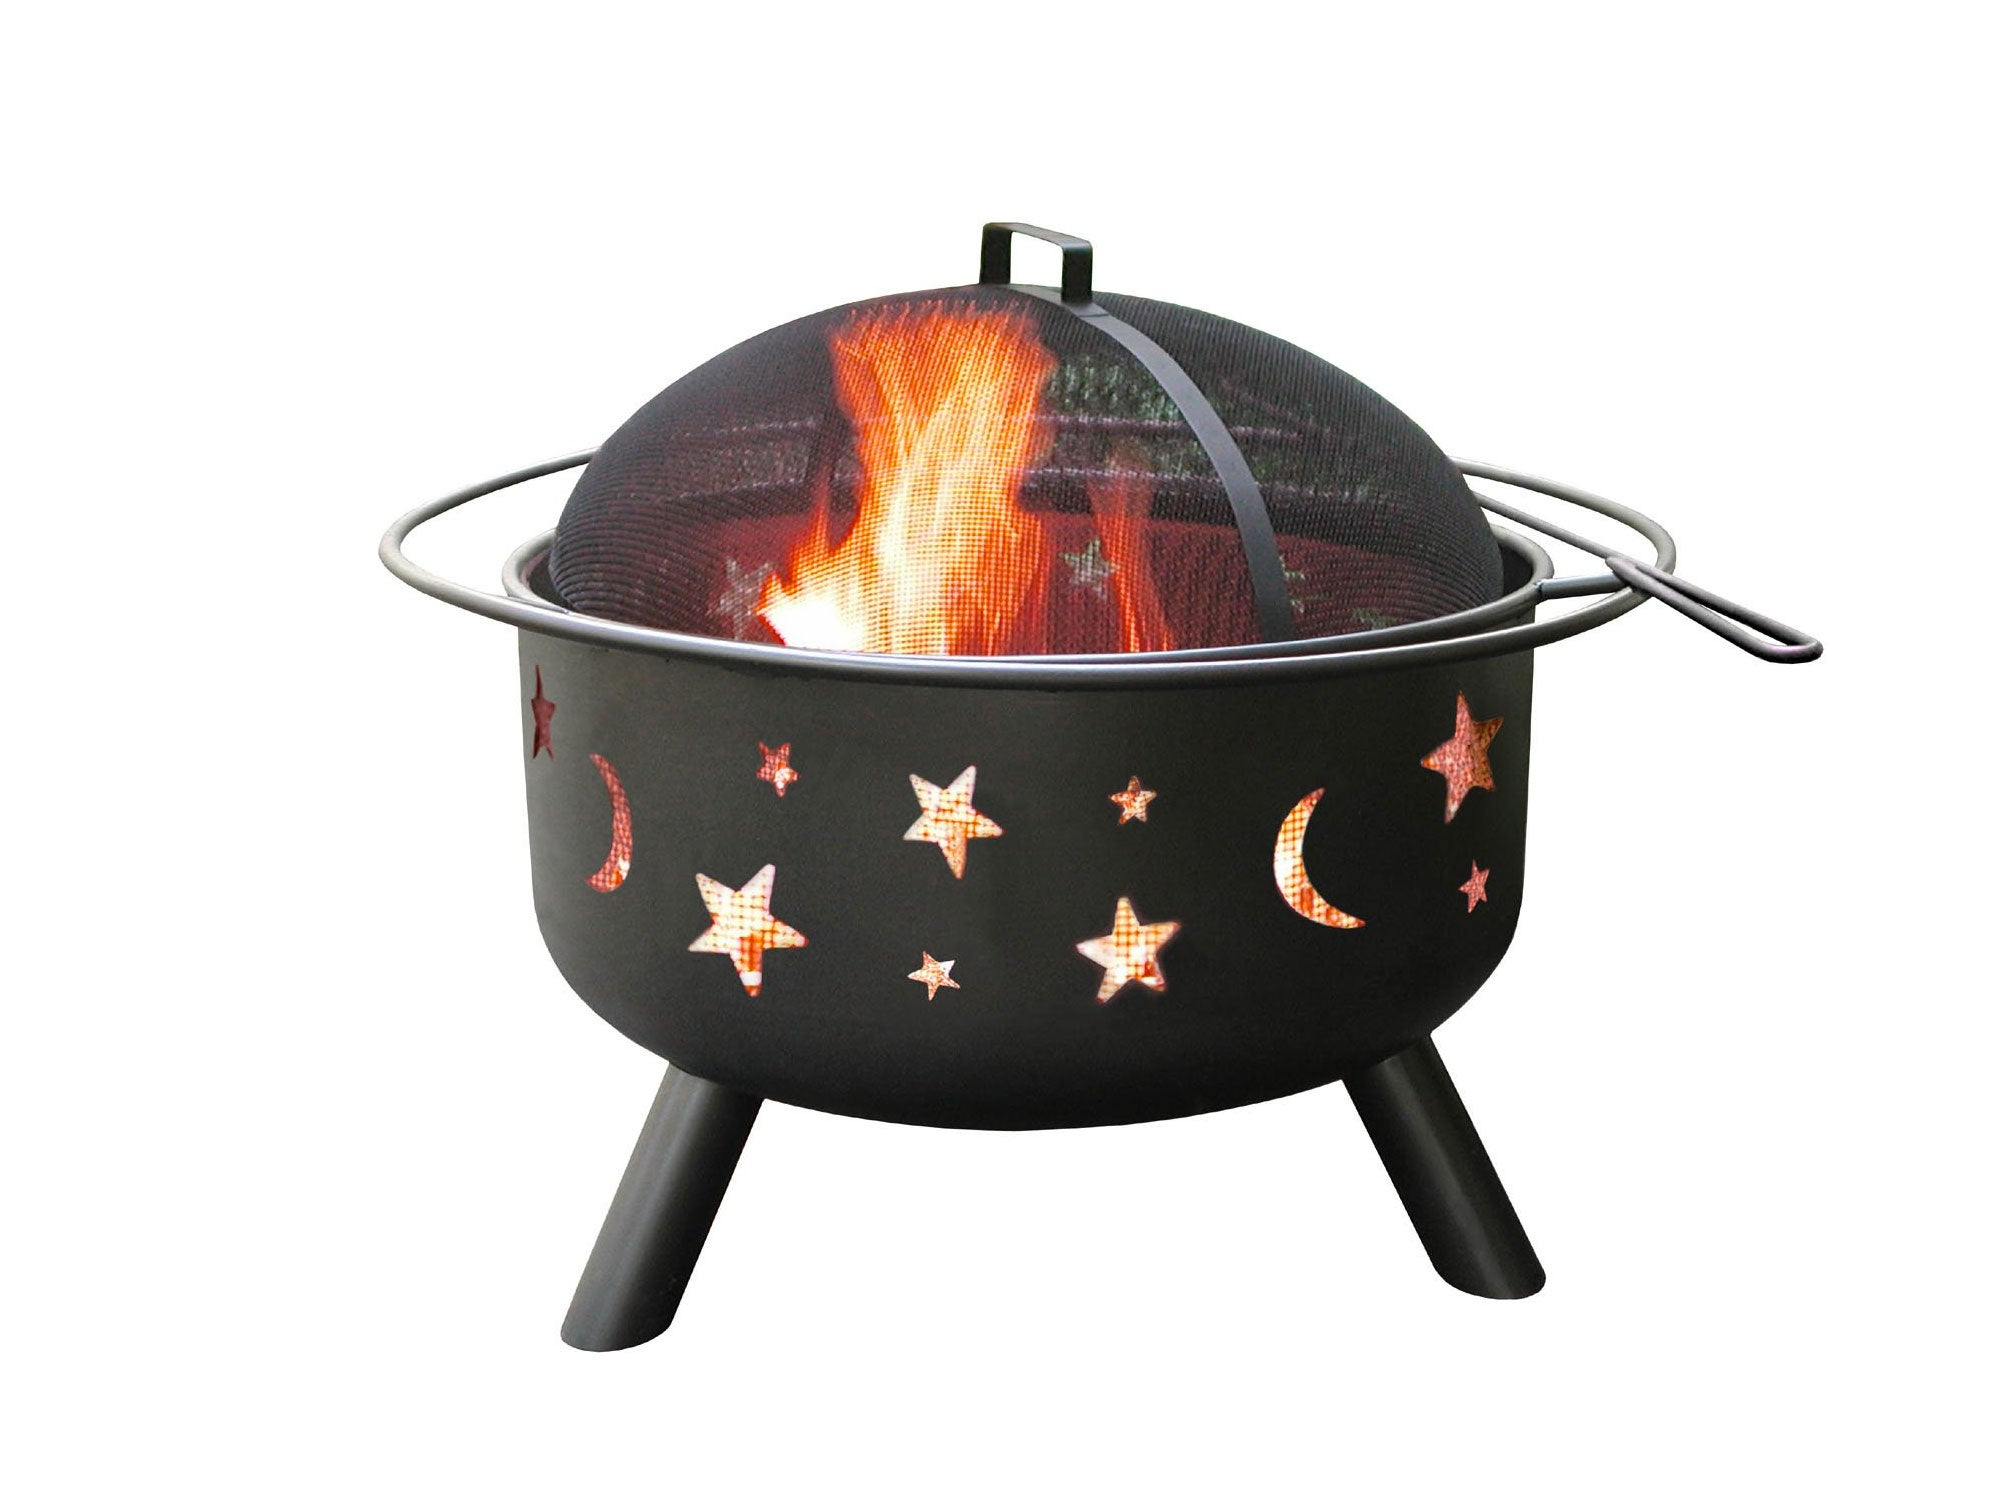 Fire pit with moon and star cutouts